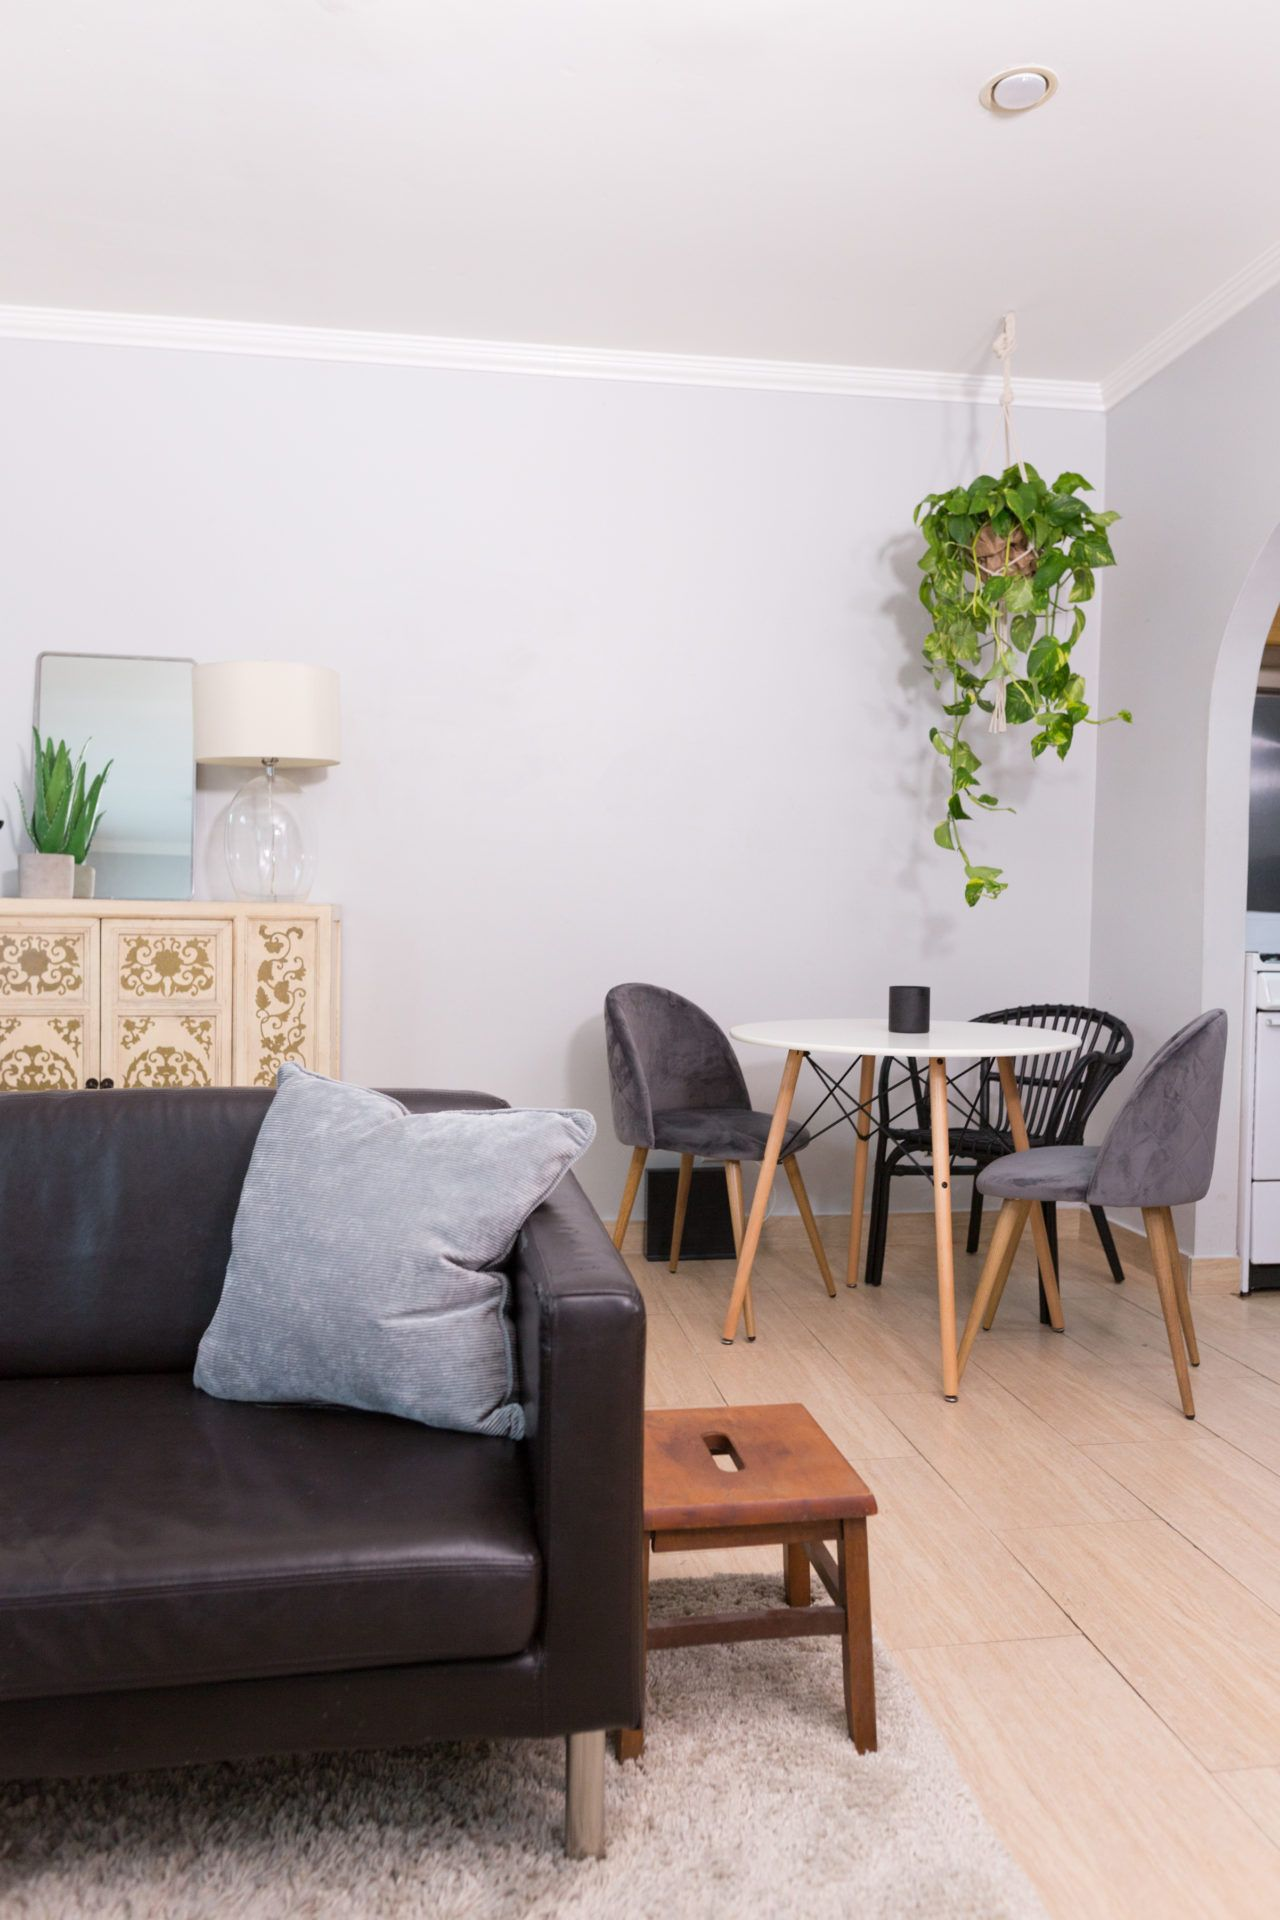 Make Living Room Spacious Using Simple And Smart Tricks Best Interior Design Services If You Donu0027t Have A Dining Room Area, Use A Corner With A Small Bistro  Table To Create Your Own!